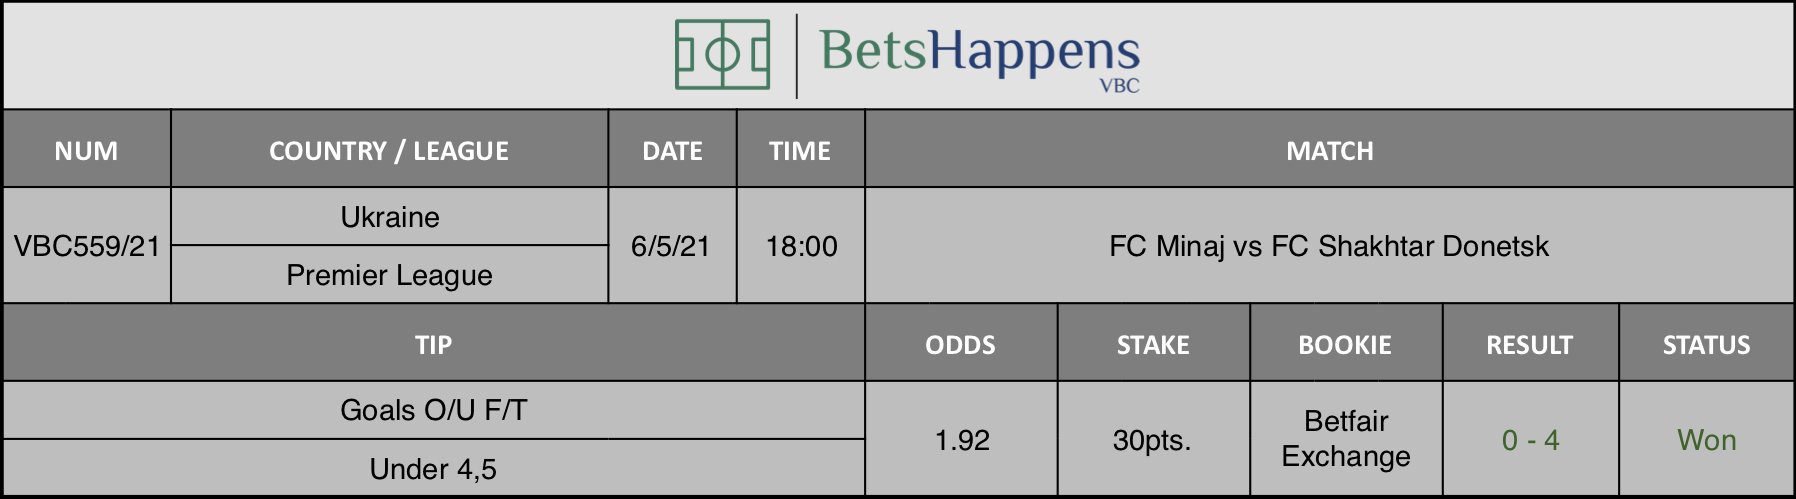 Results of our tip for the FC Minaj vs FC Shakhtar Donetsk match where Goals O/U F/T Under 4,5 is recommended.